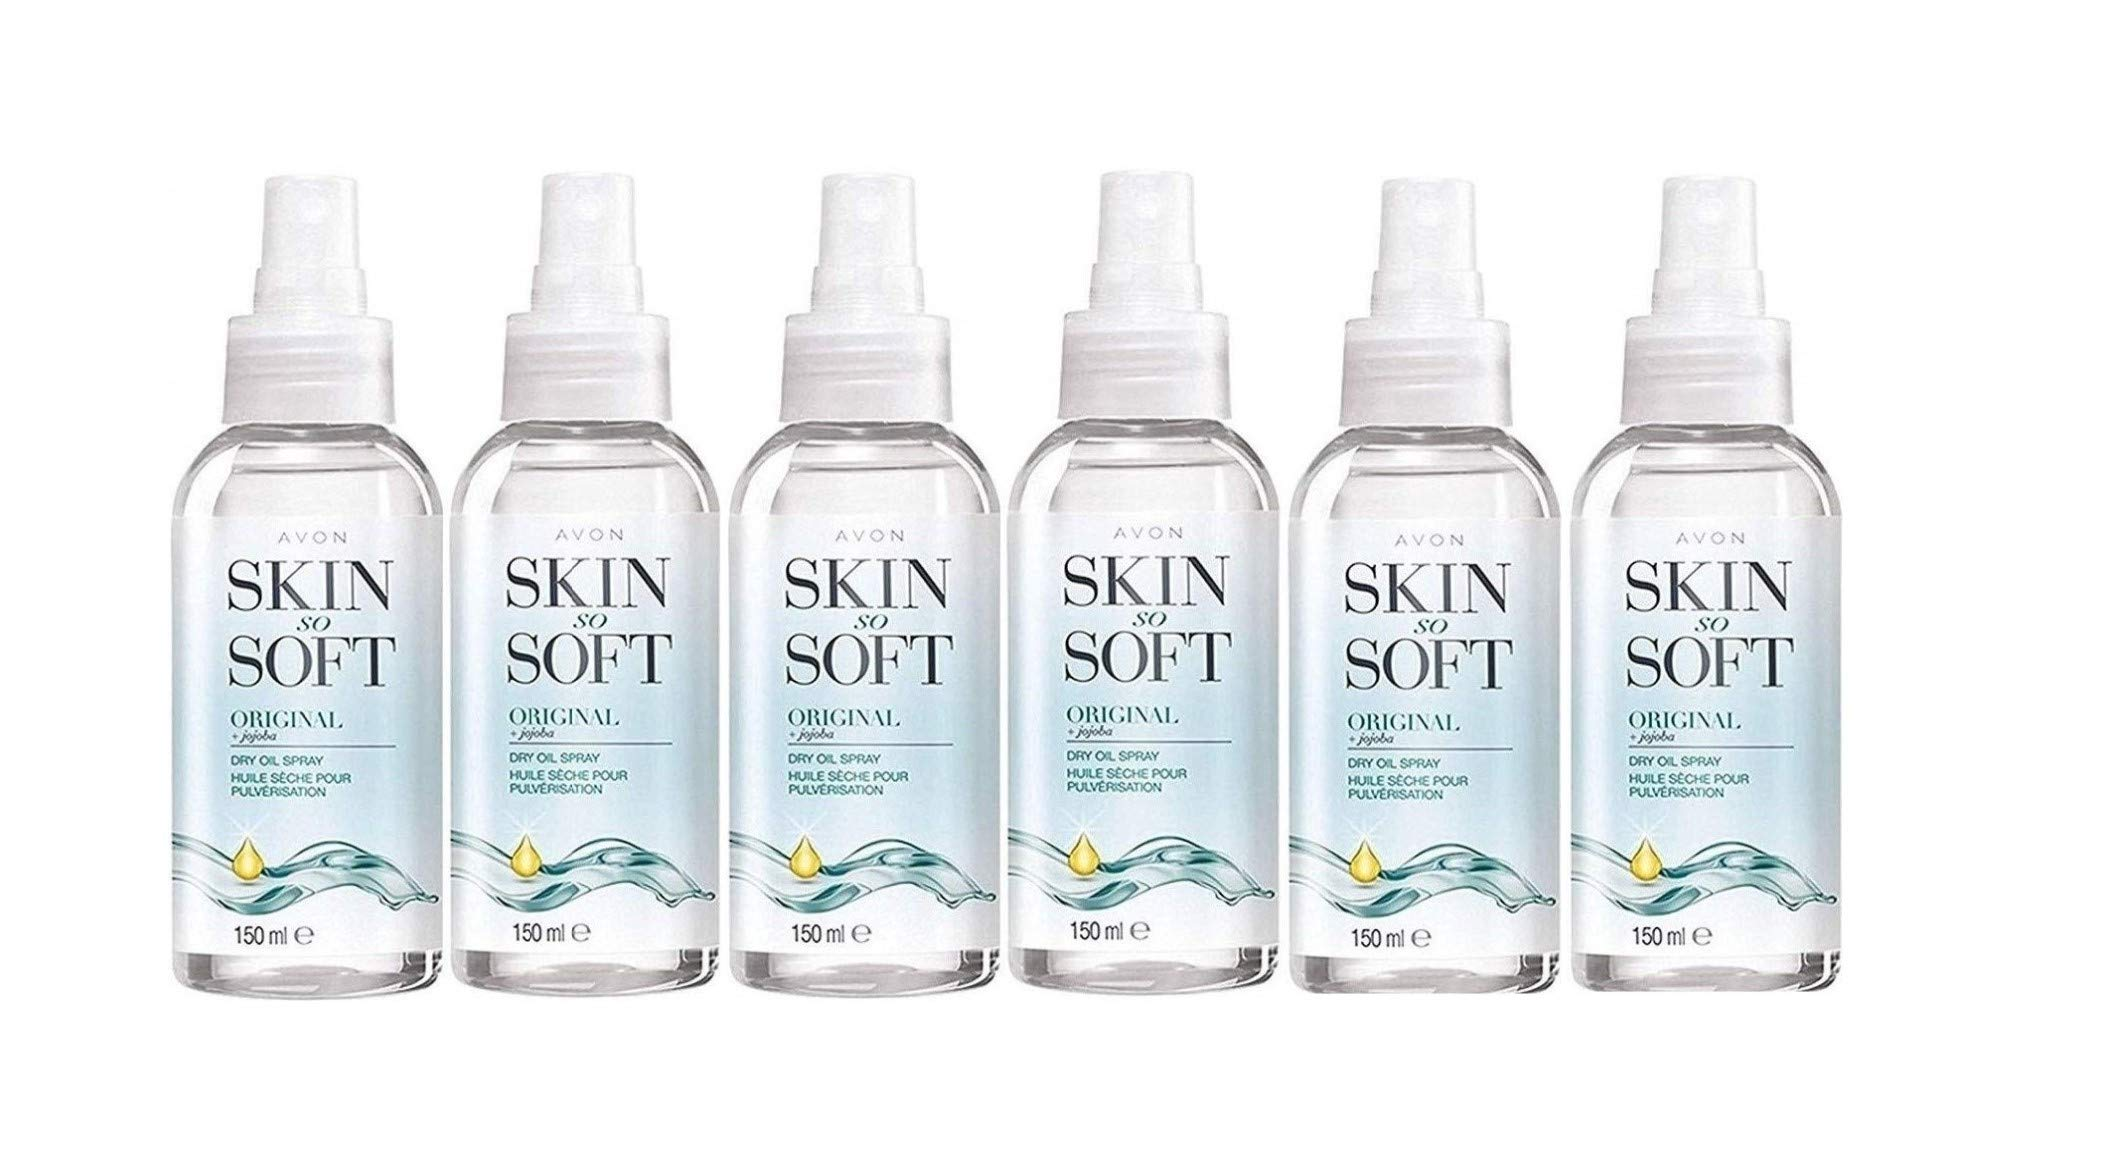 6 x 150ml Bottles of Avon Skin So Soft Original Dry Oil Body Spray with Jojoba & Citronellol – The Alternative To Insect Repellent